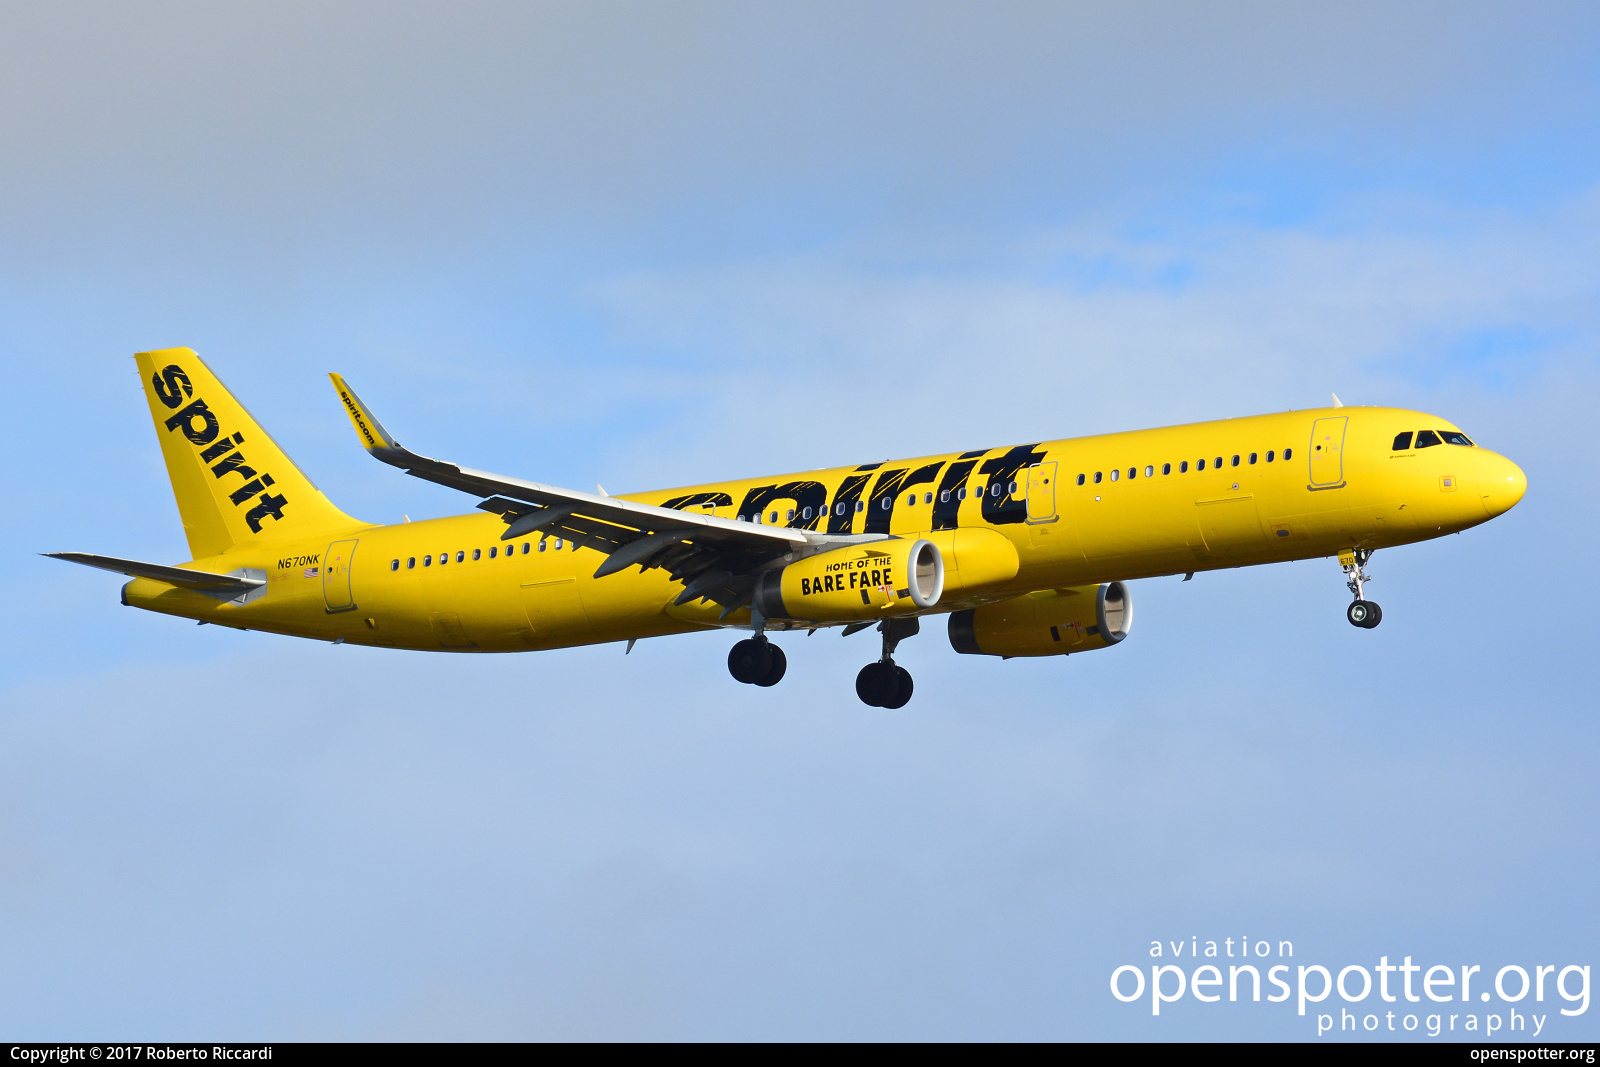 N670NK - Spirit Airlines Airbus A321-231(WL) at Seattle-Tacoma International Airport (SEA/KSEA) taken by Roberto Riccardi | openspotter.org | ID: 51516